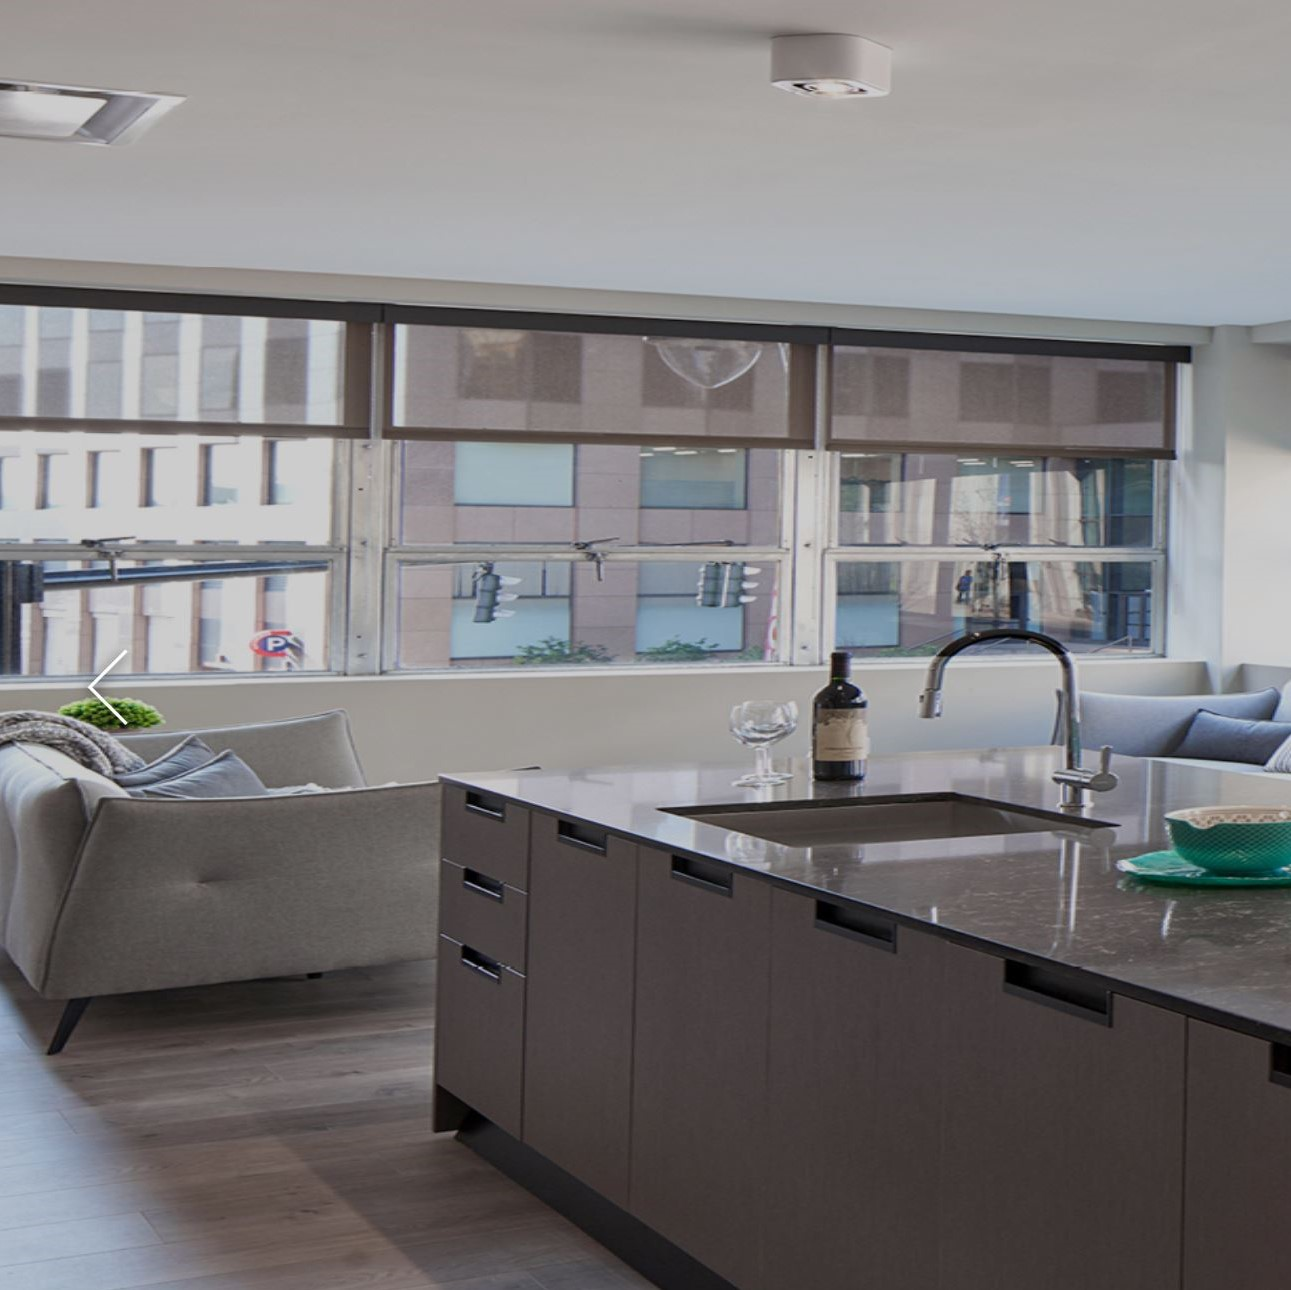 Kitchen with modern cabinets and quartz countertops with white couch and cool windows in background